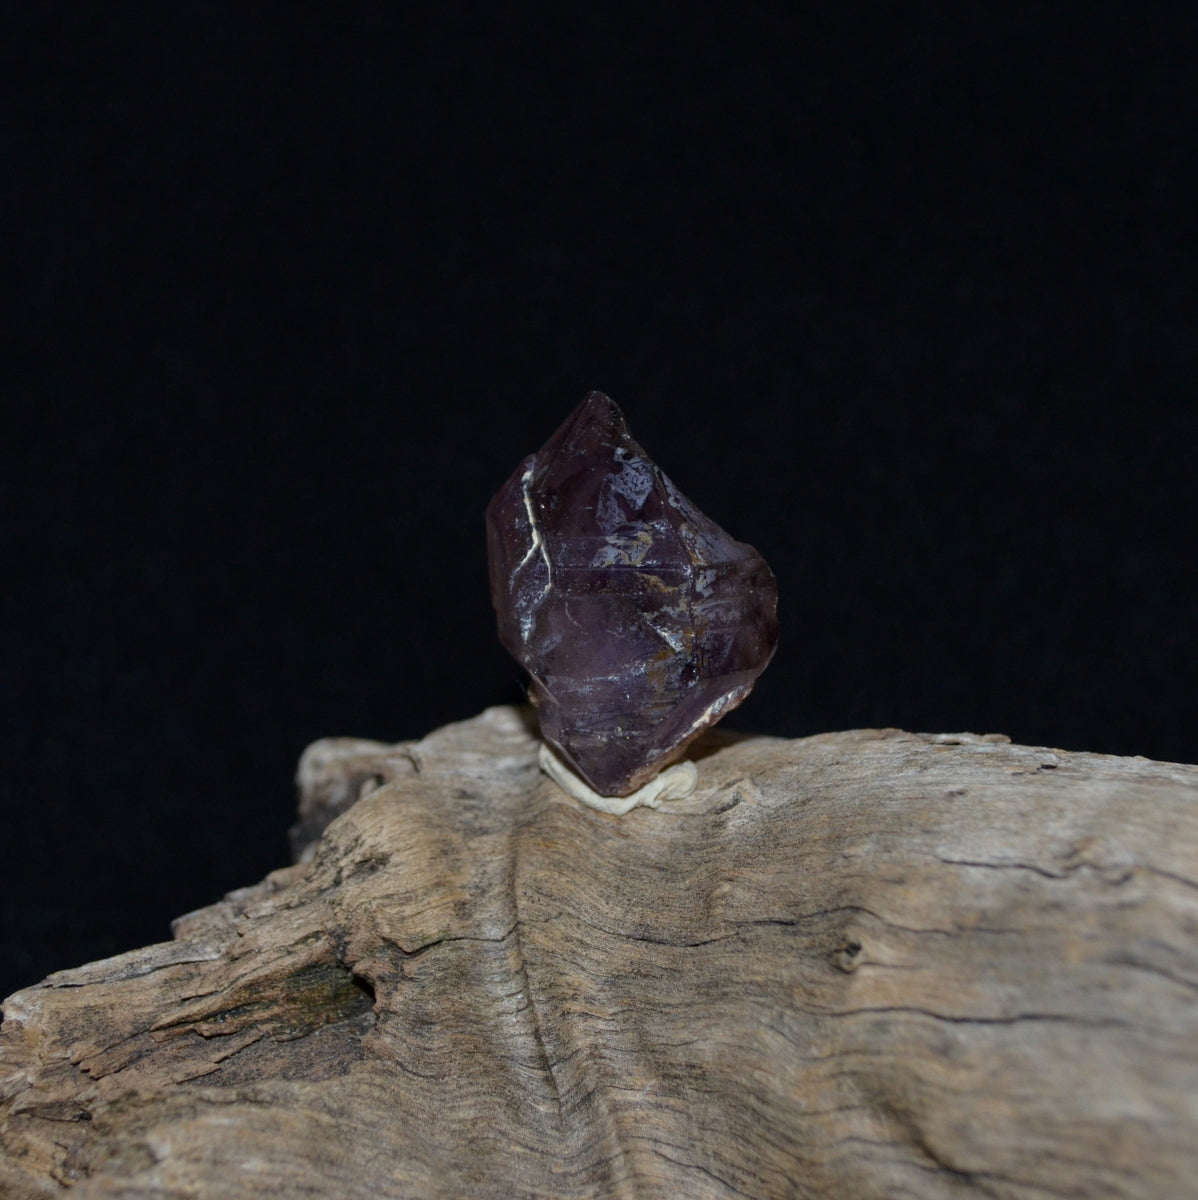 Smoky Amethyst Sceptre Phantom Brandberg Crystal - Ancient Wisdom Earth Connection - Available now at Illiom Crystals - We have Afterpay!